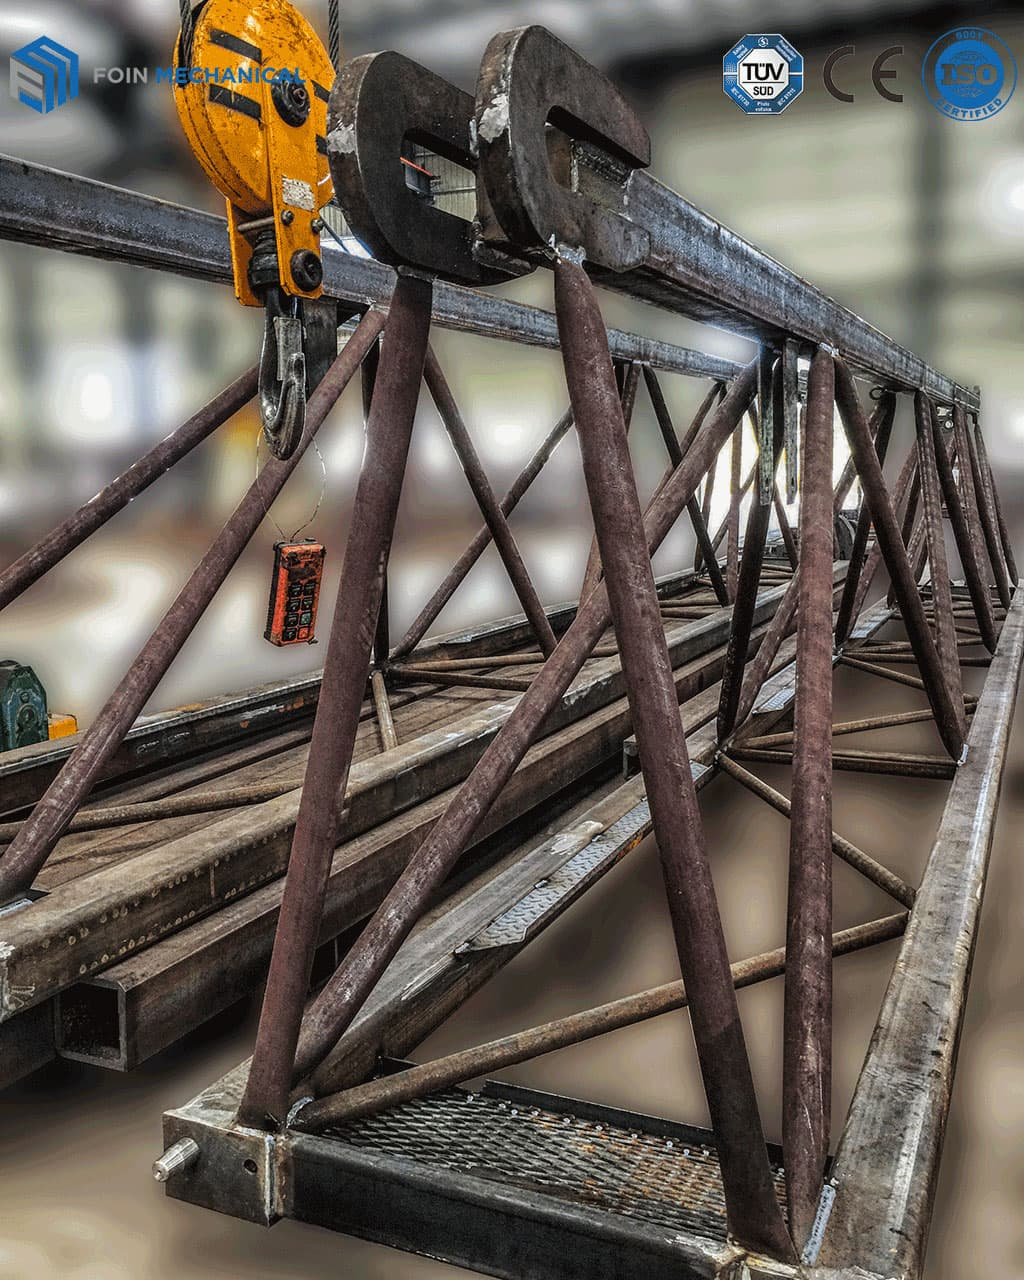 Foin tower crane Semi-finished Welded Tower Cranes Boom Structure